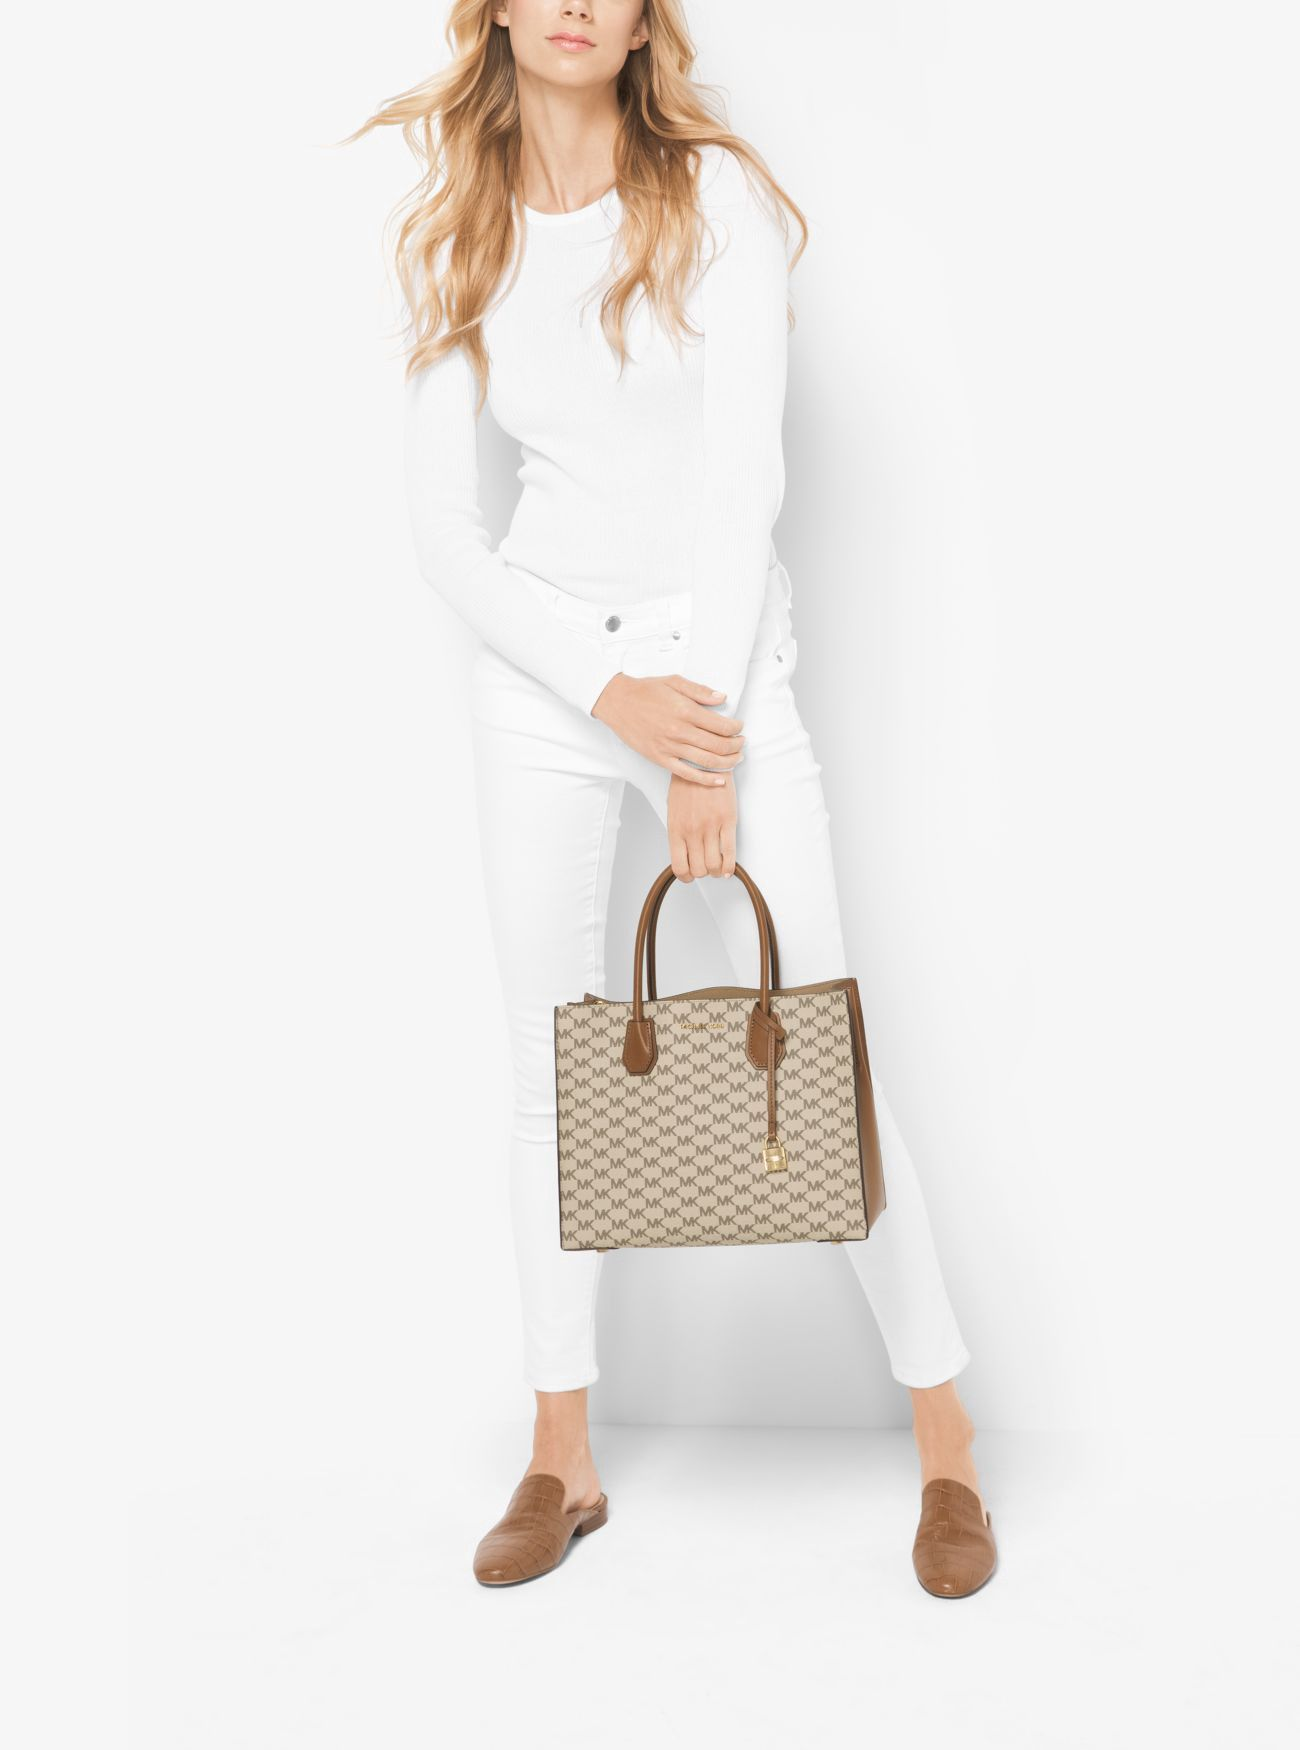 43fffea08bb3 MICHAEL KORS Mercer Large Heritage Signature Tote. #michaelkors #bags  #canvas #tote #lining #polyester #shoulder bags #hand bags #